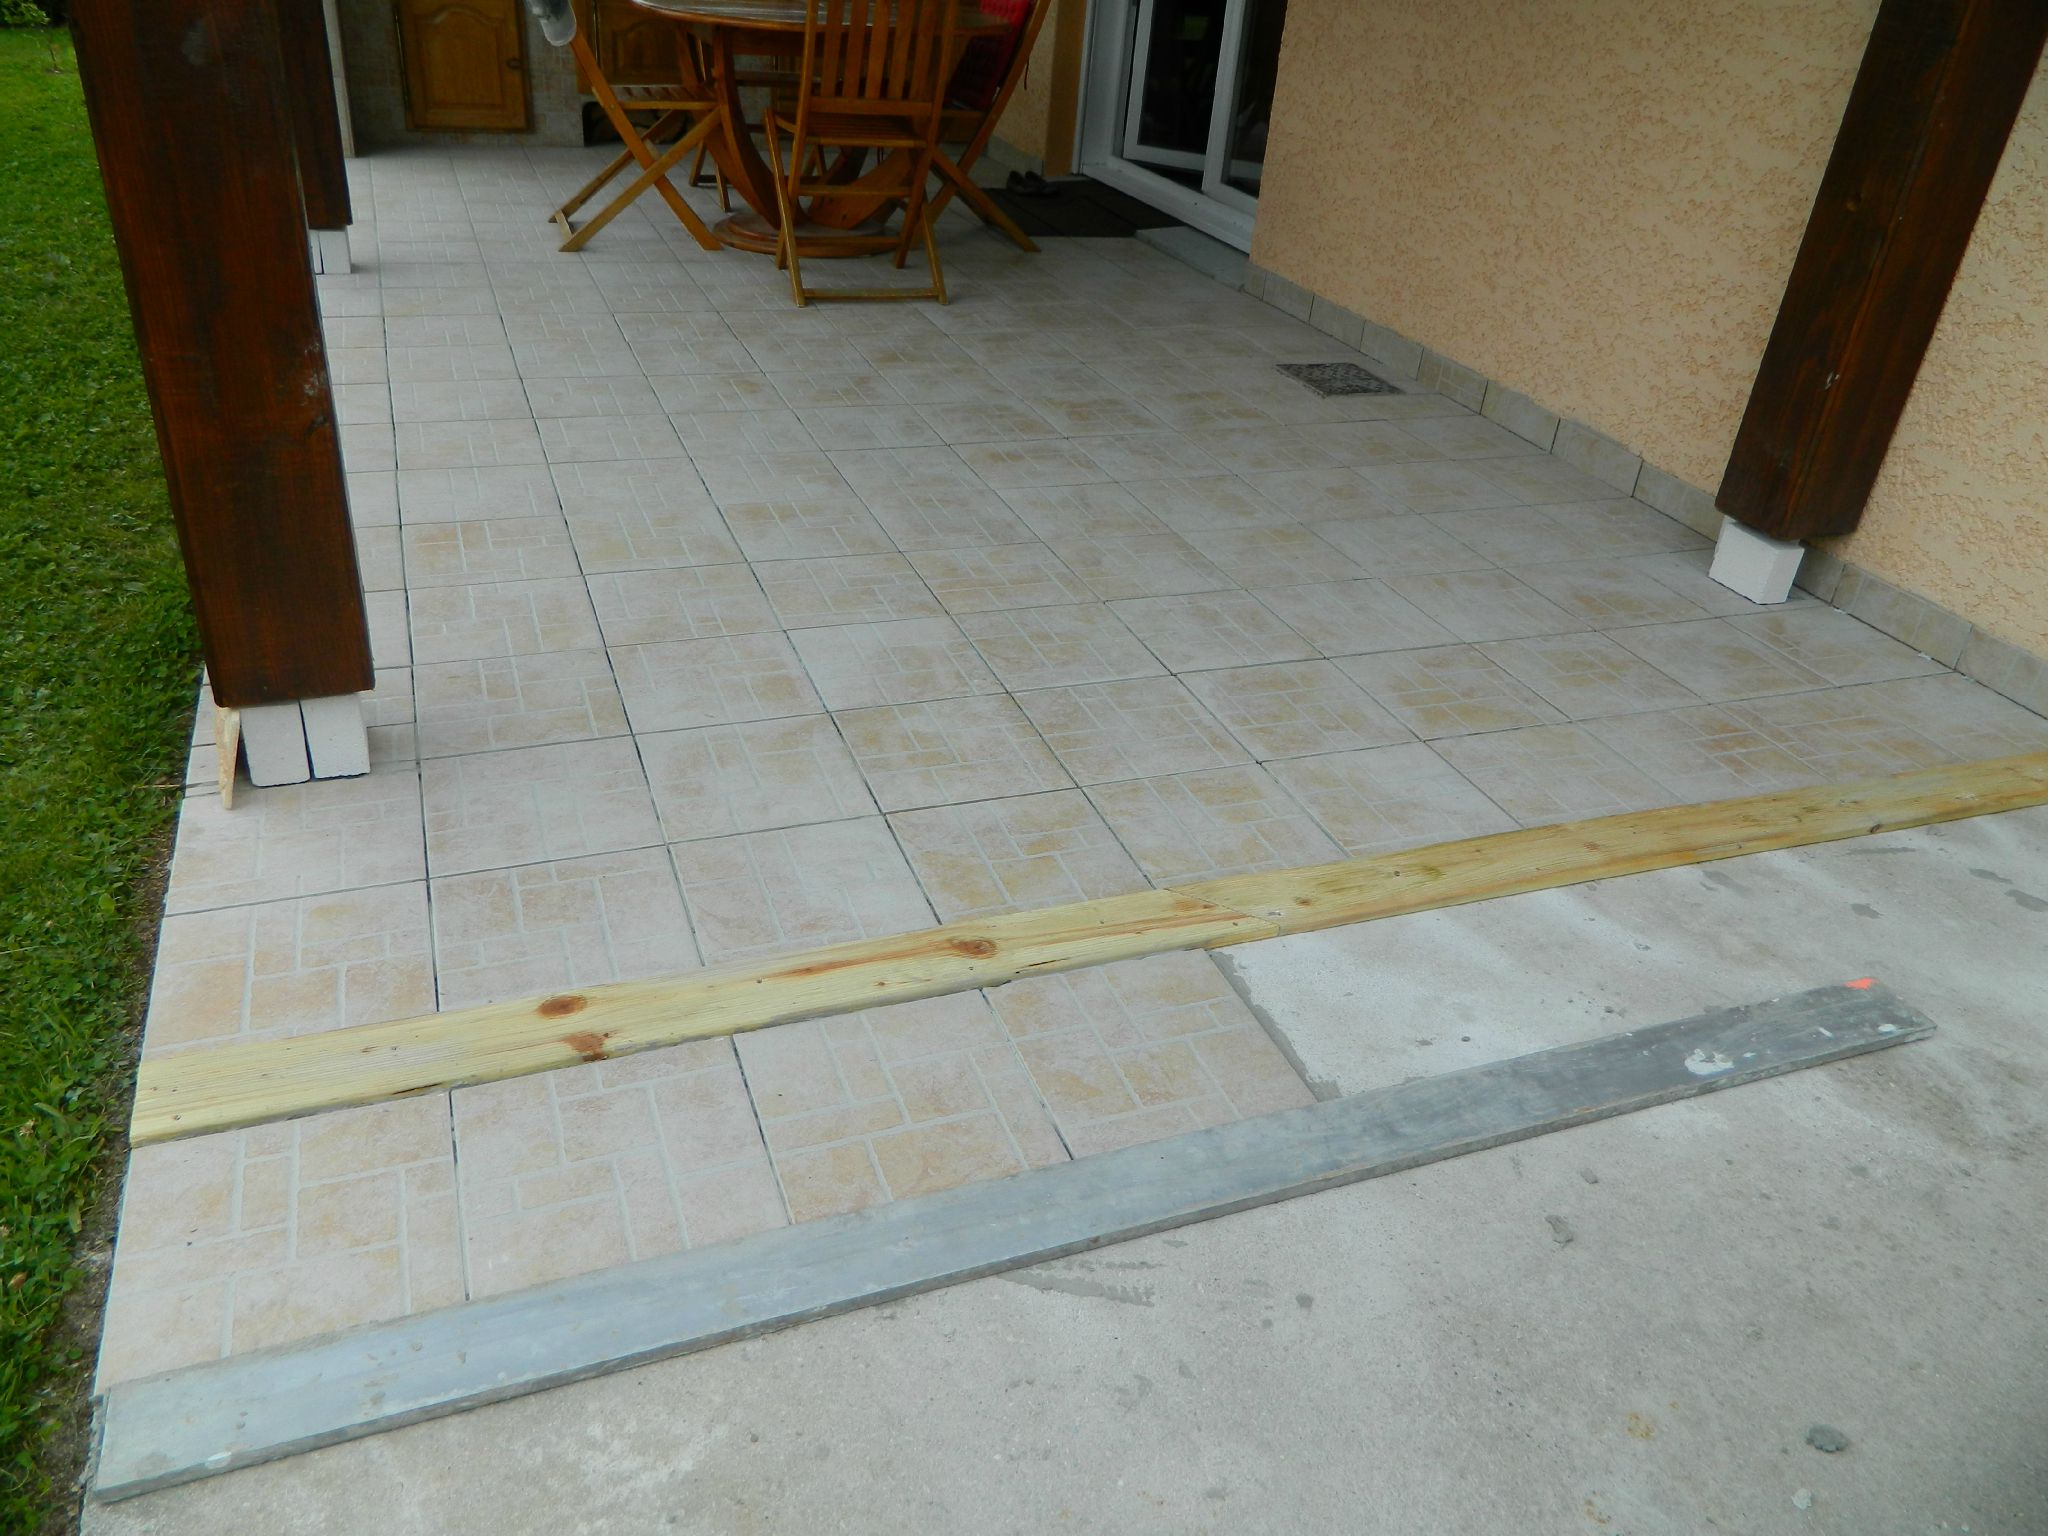 Joint dilatation carrelage terrasse for Carreler sur un carrelage existant